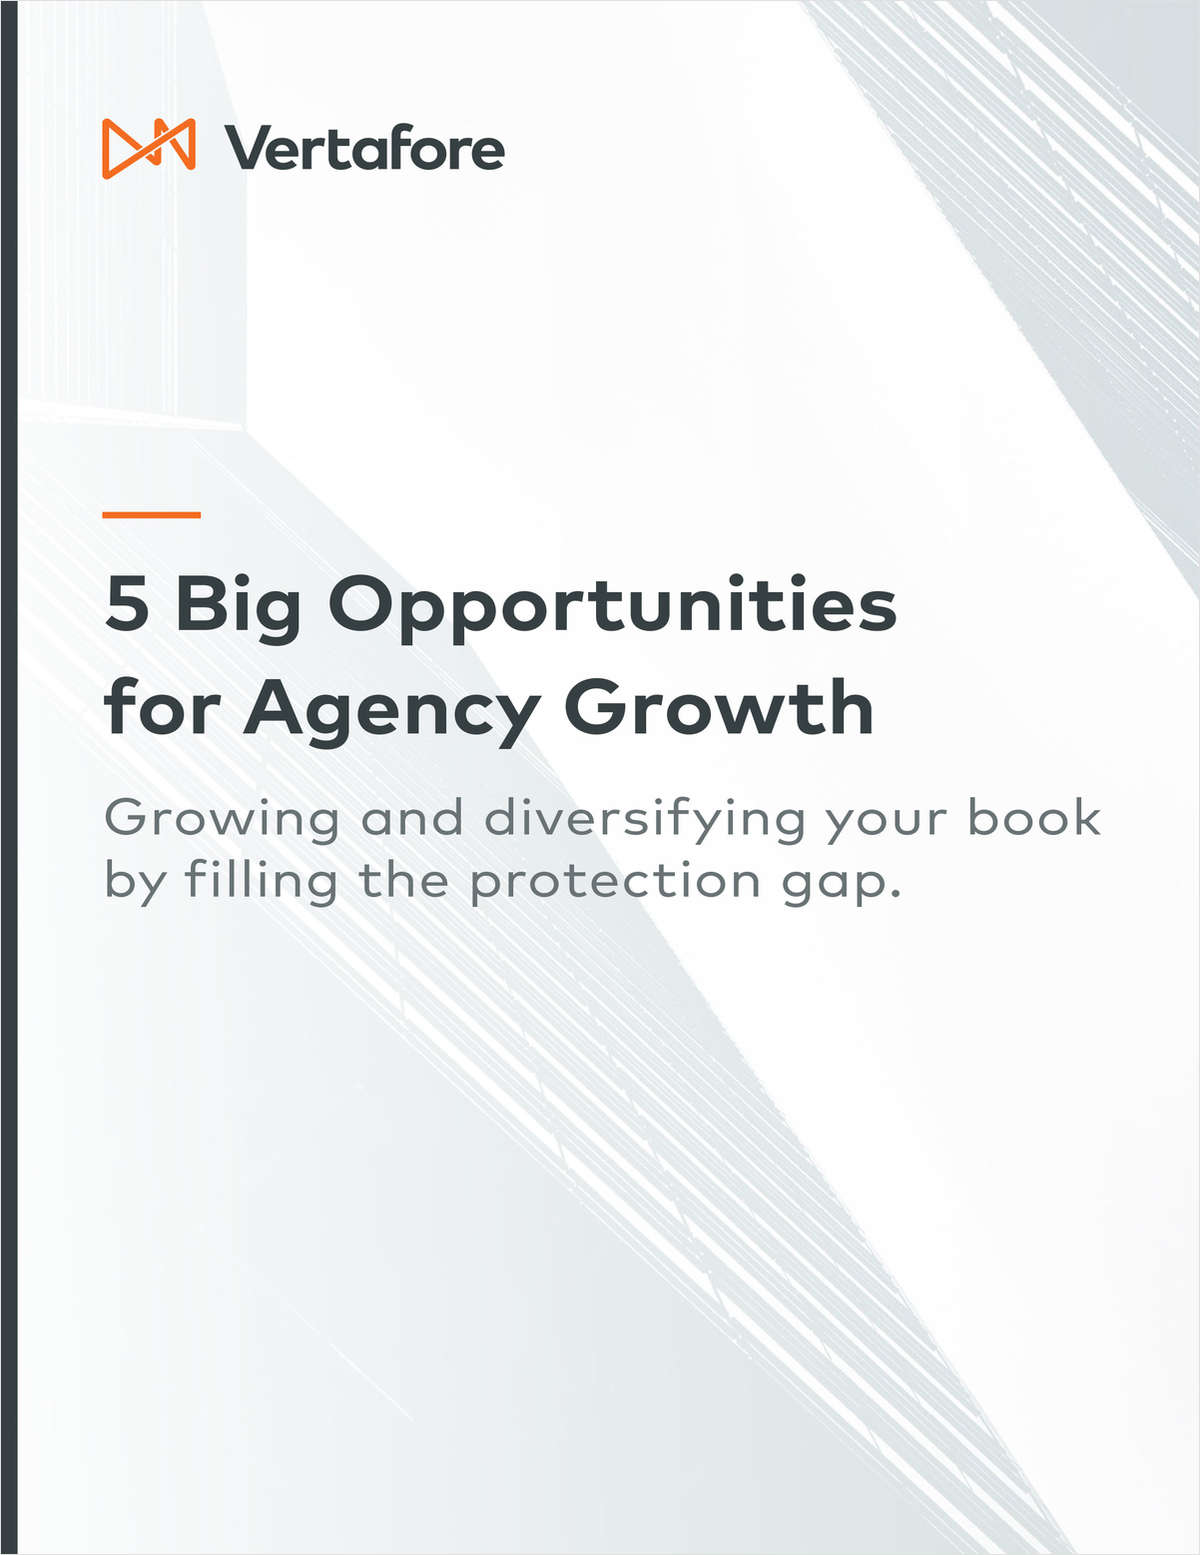 5 Big Opportunities for Agency Growth